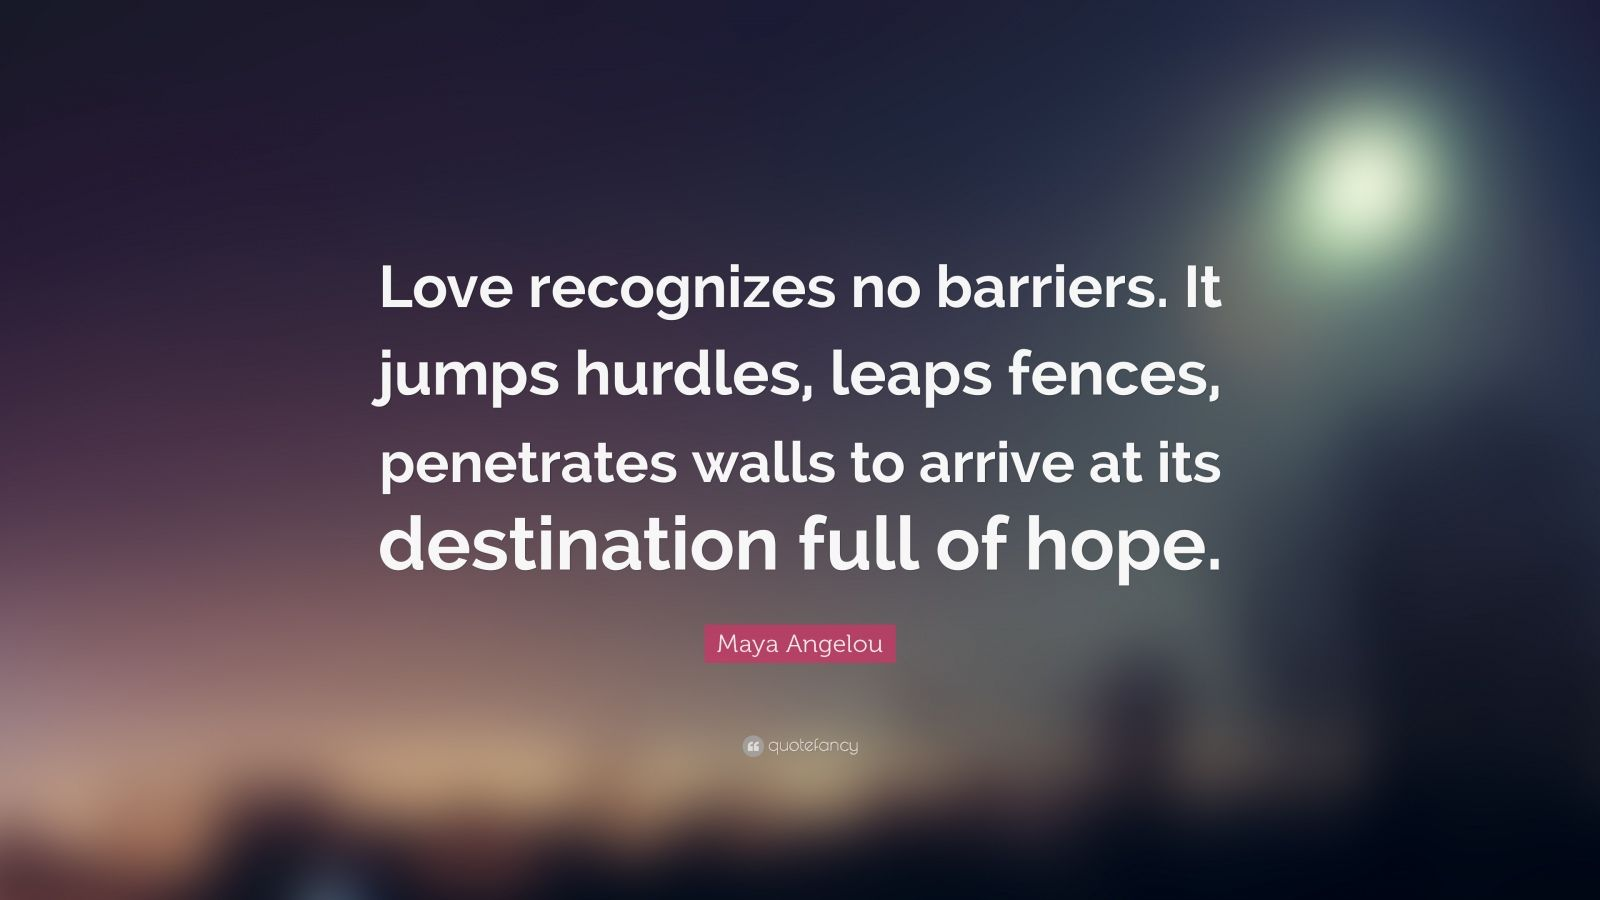 Inspiring Relationship Quotes Wallpaper Maya Angelou Quote Love Recognizes No Barriers It Jumps